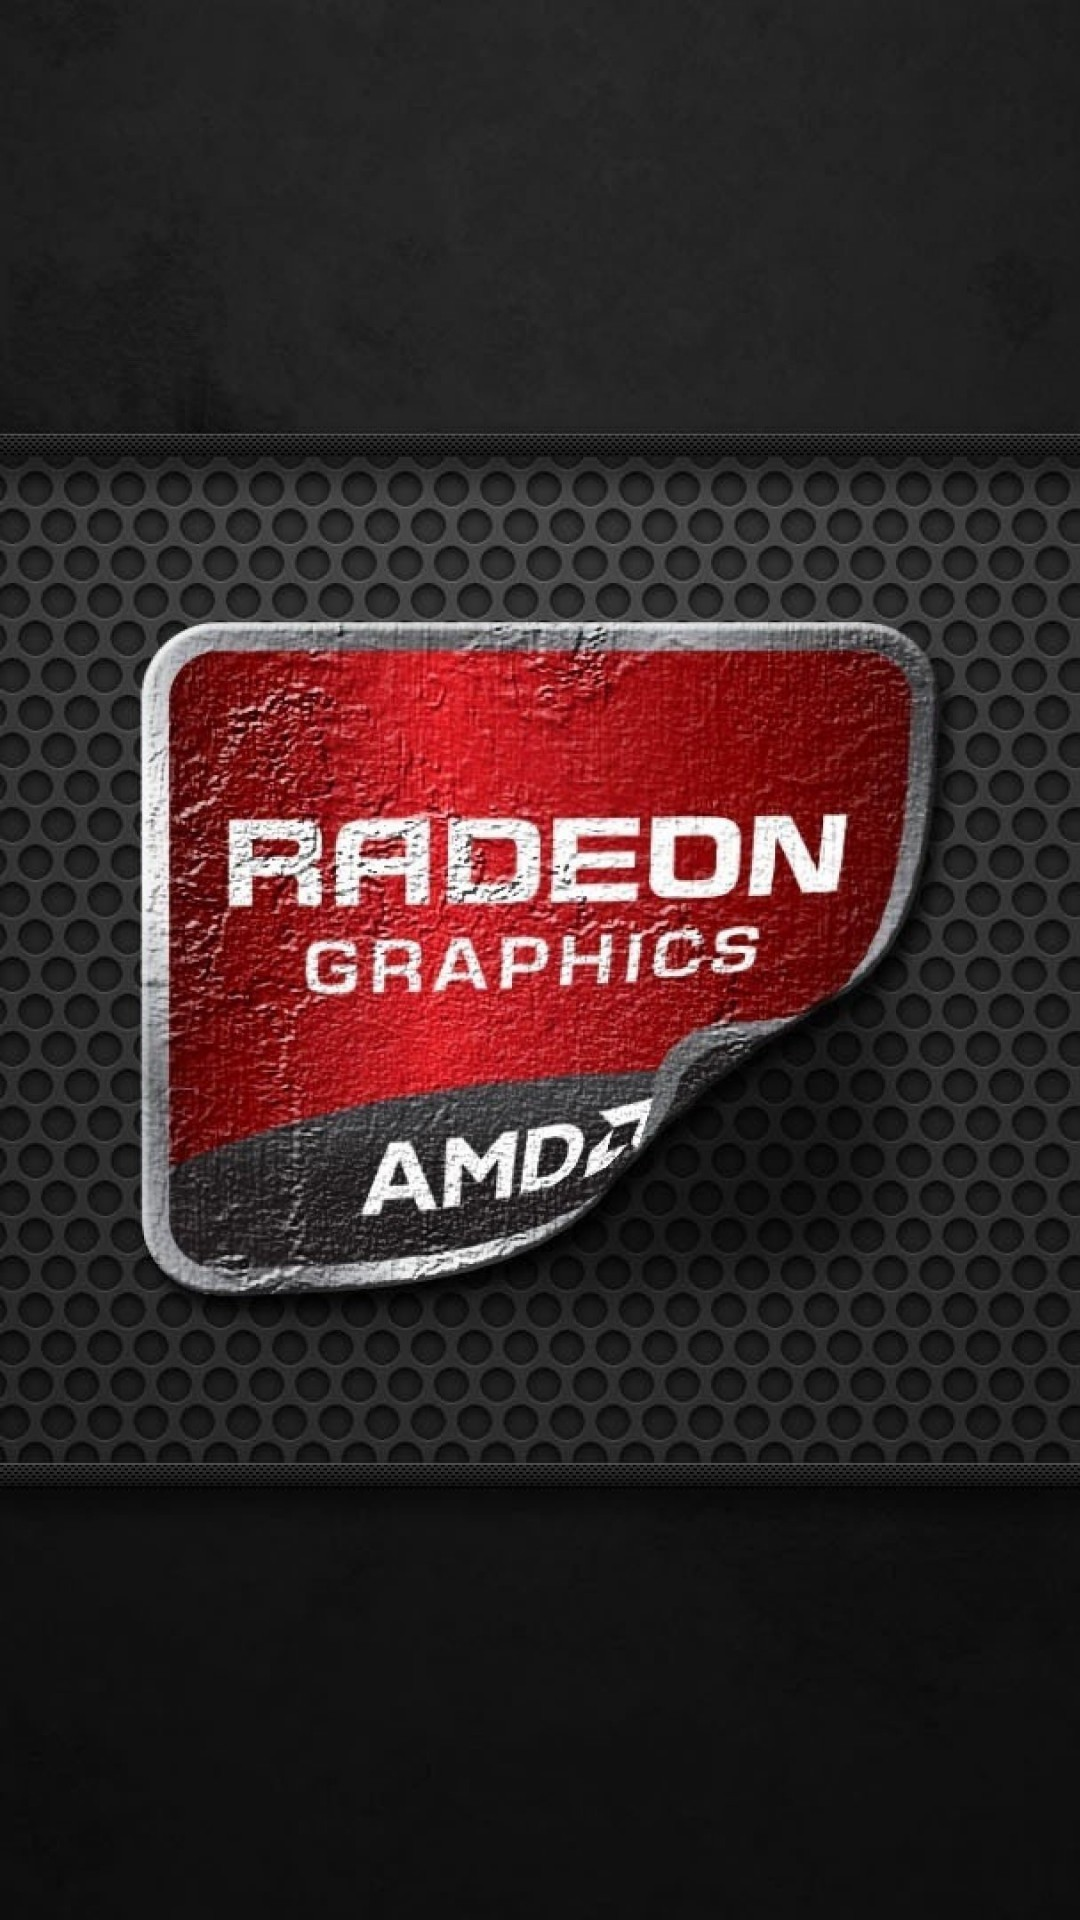 AMD Radeon Graphics Wallpaper for SONY Xperia Z2